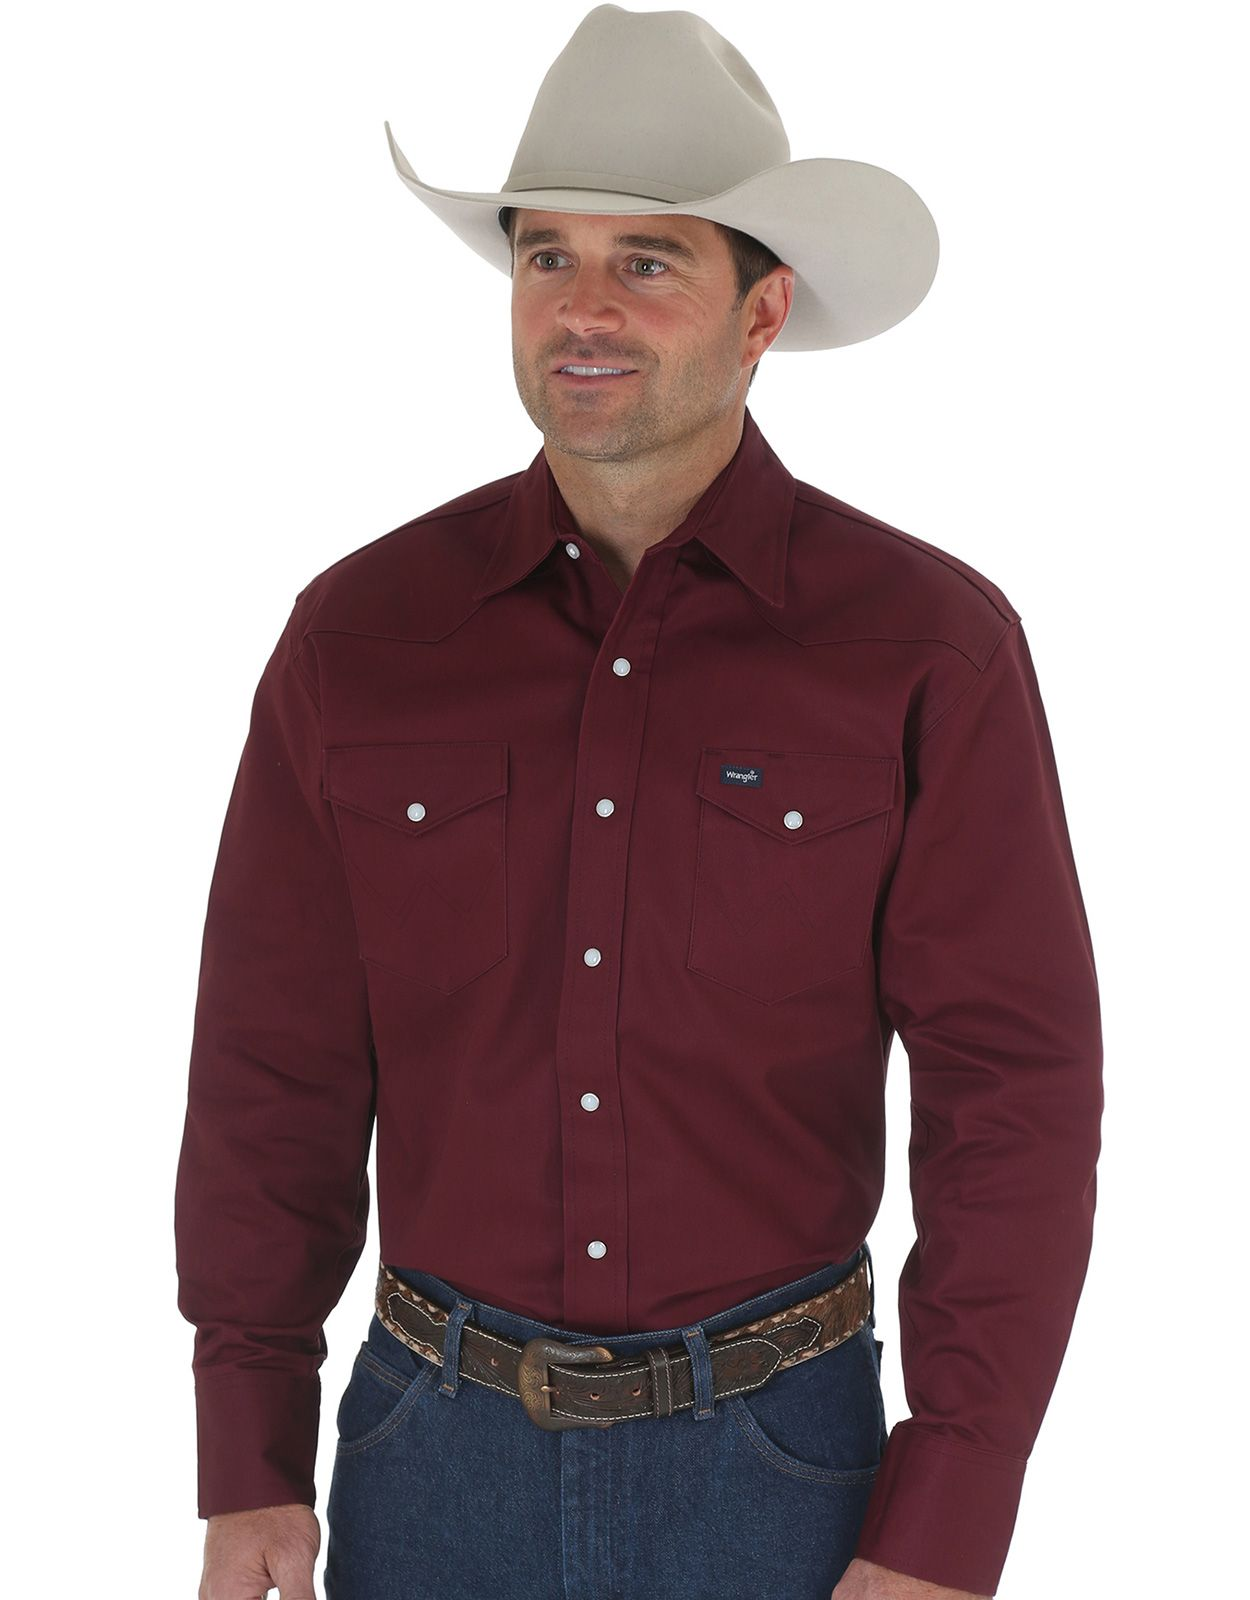 Wrangler Men's Classic Fit Firm Finish Long Sleeve Solid Snap Work Shirt - Red Oxide